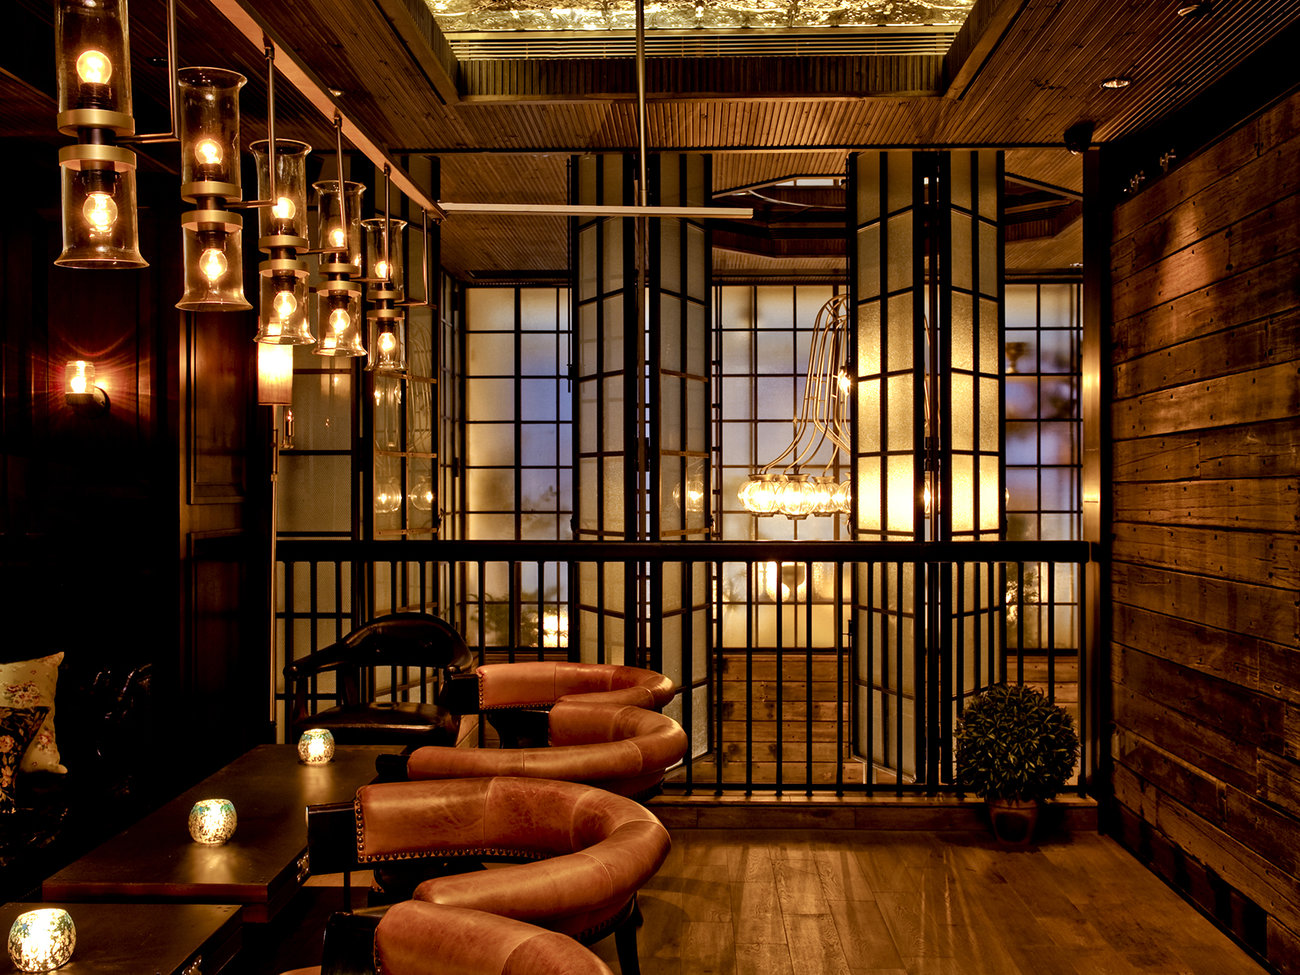 Lily & Bloom Bar in Hong Kong